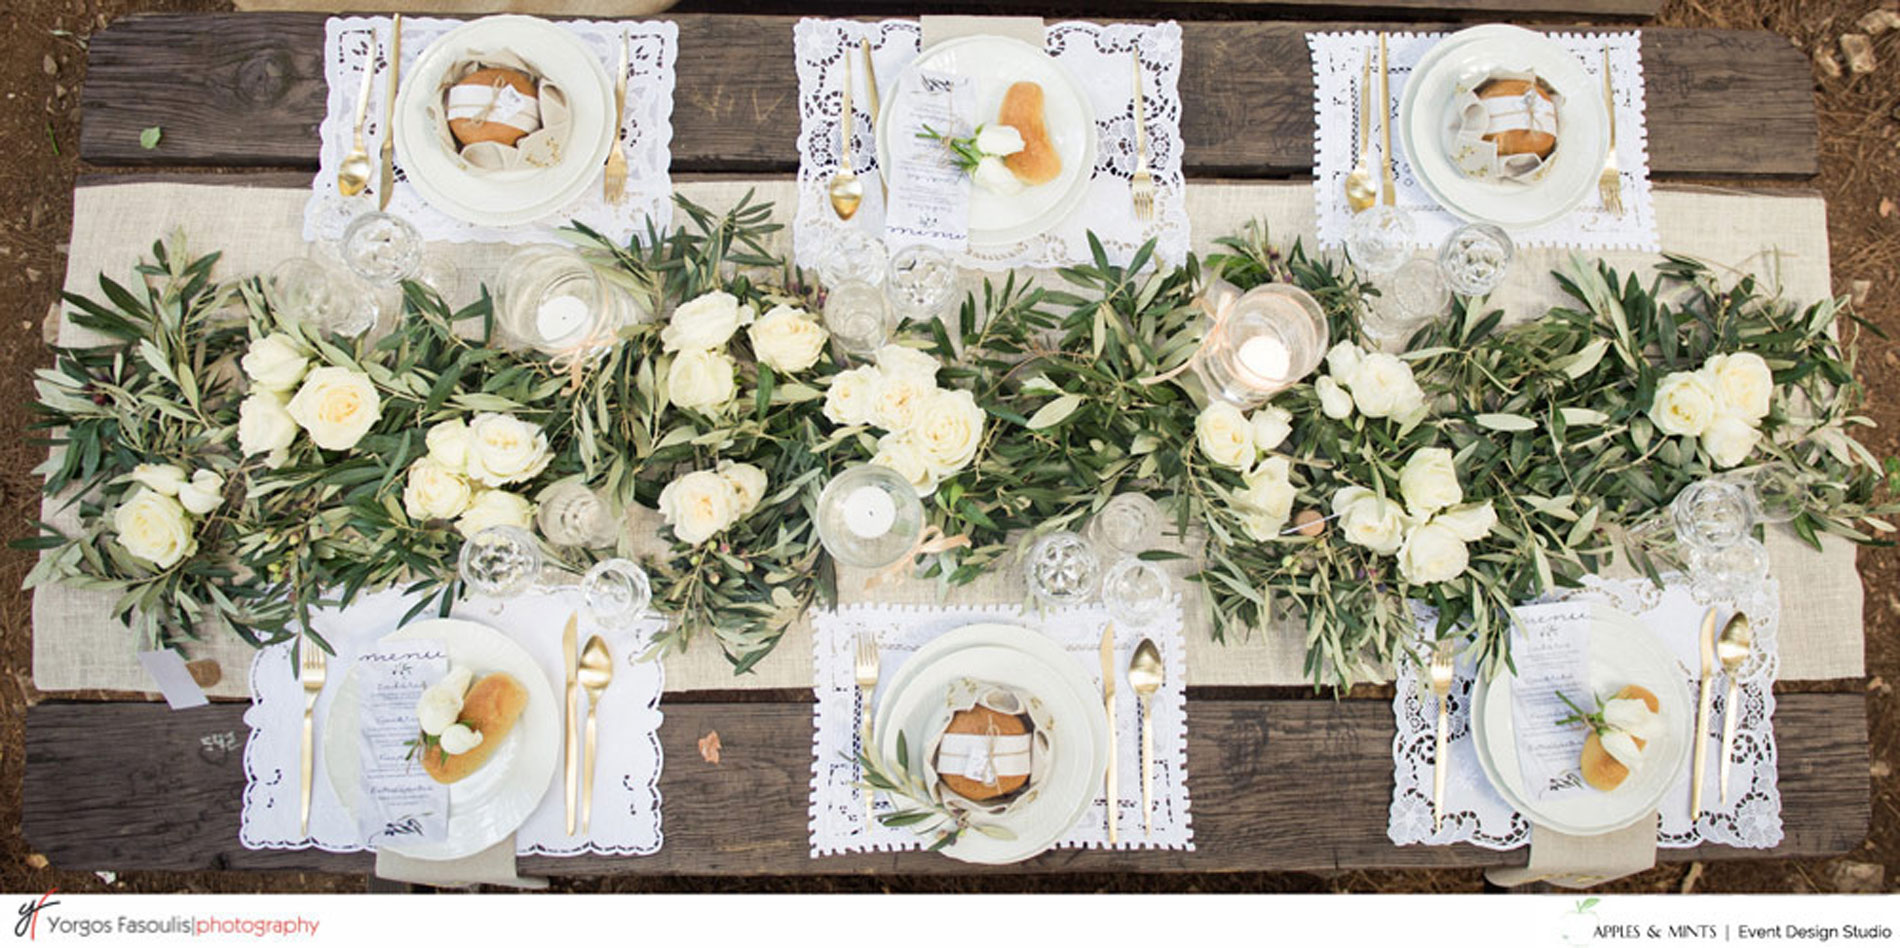 5 + 1 Wedding Decor Trends for 2017